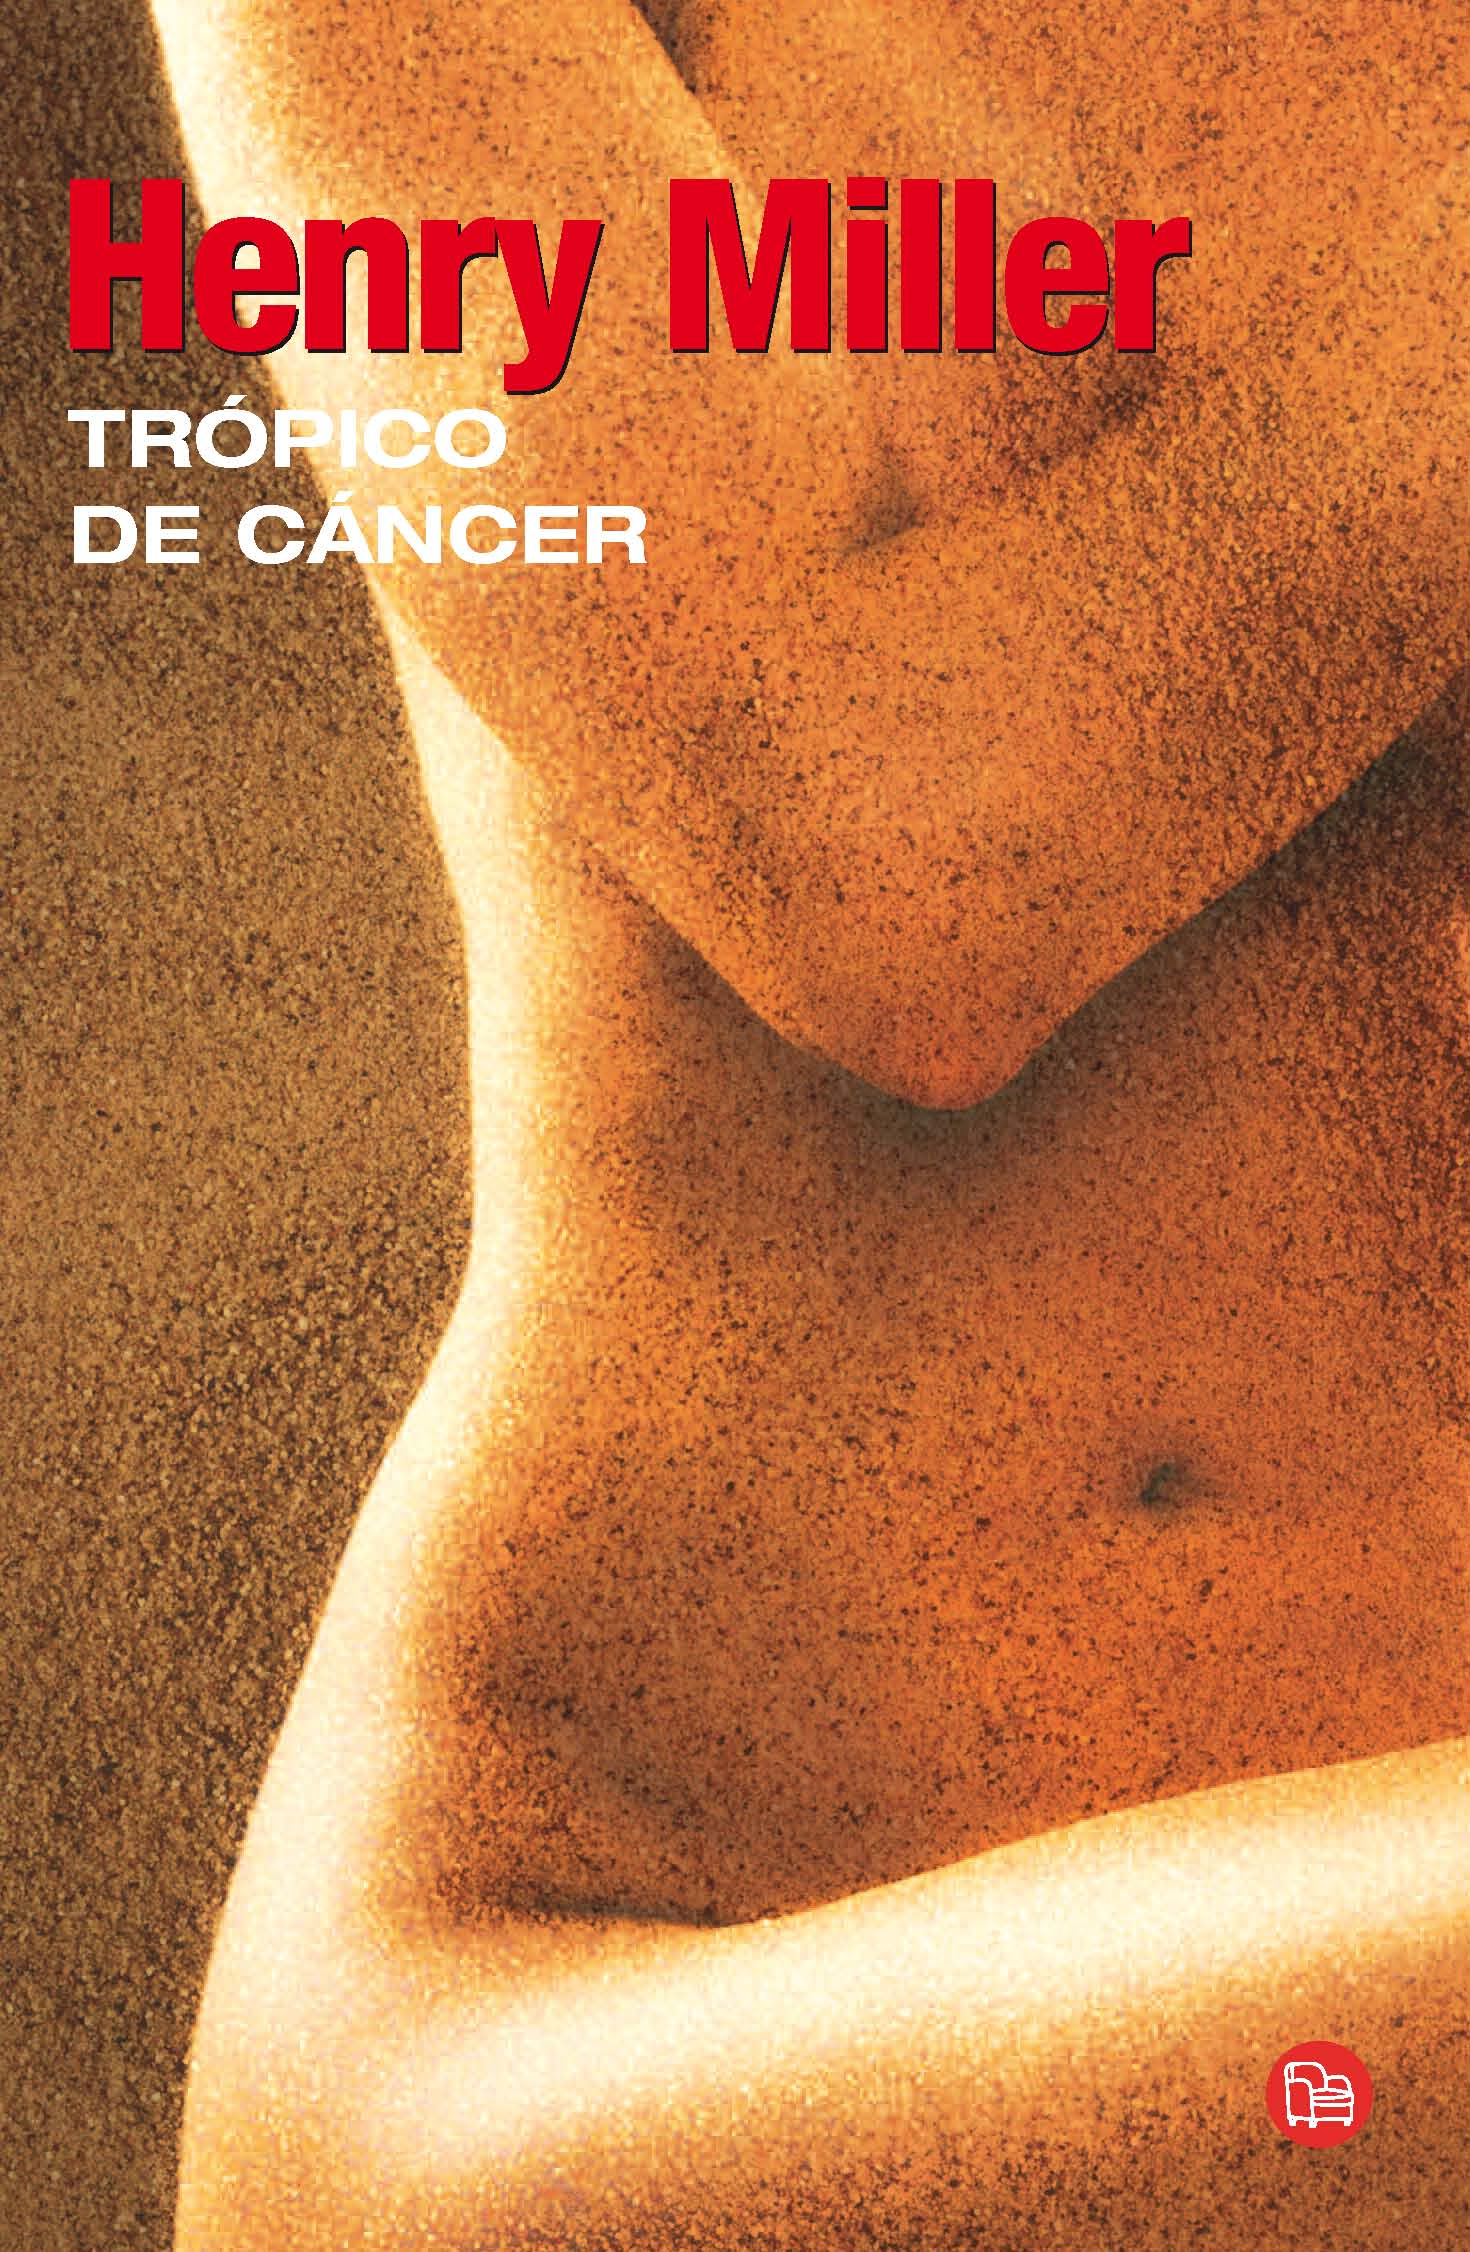 tropico cancer libro